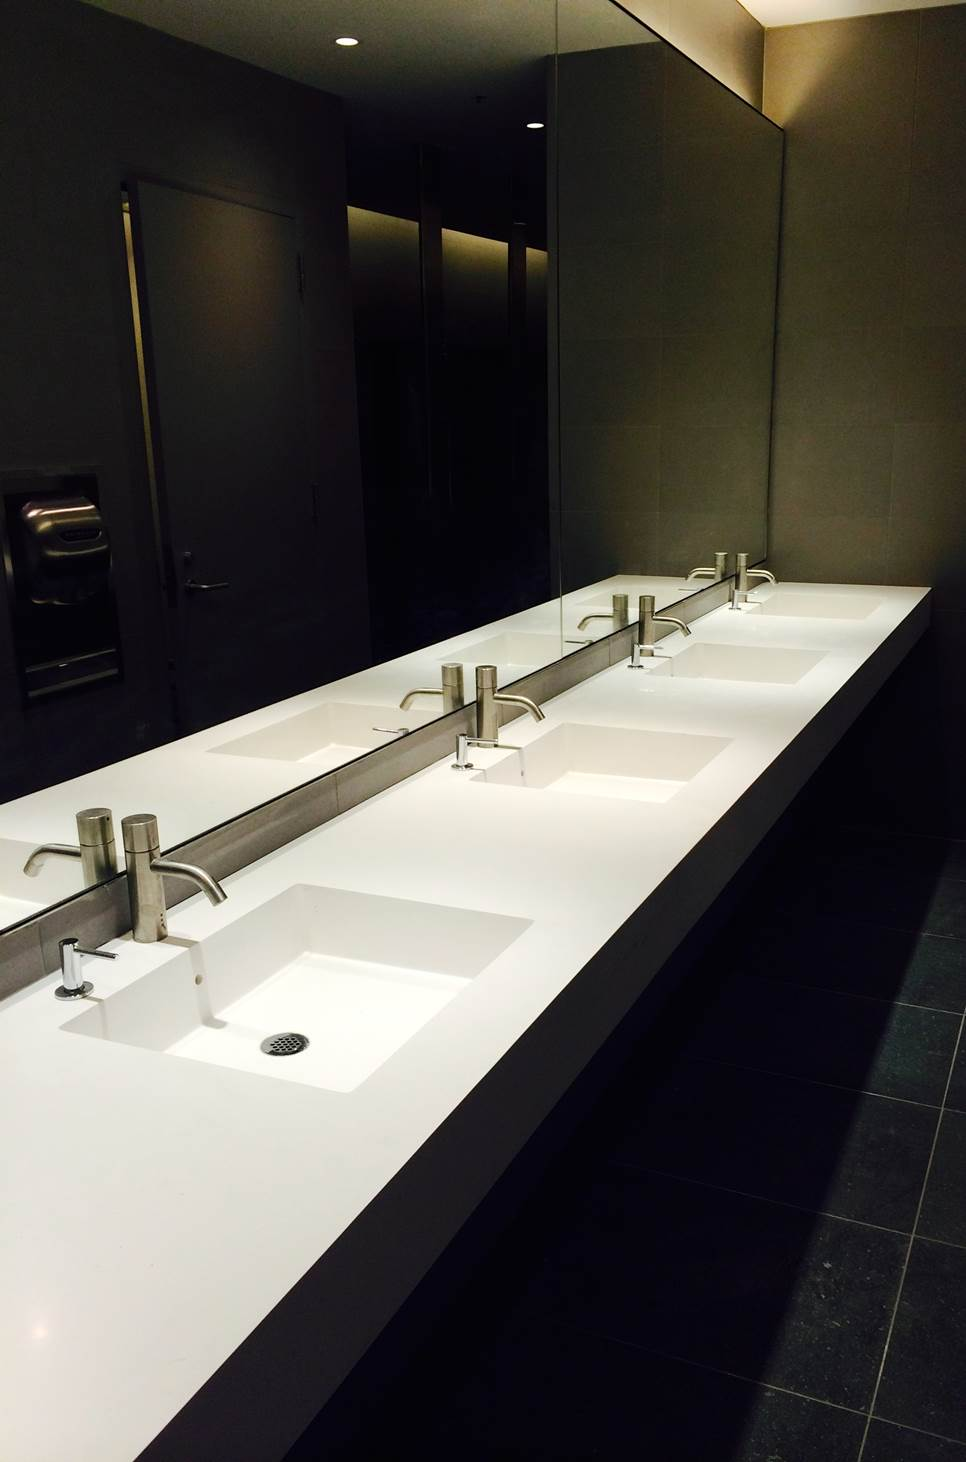 Wall Mounted Sinks Neo-Metro Brookfield Place